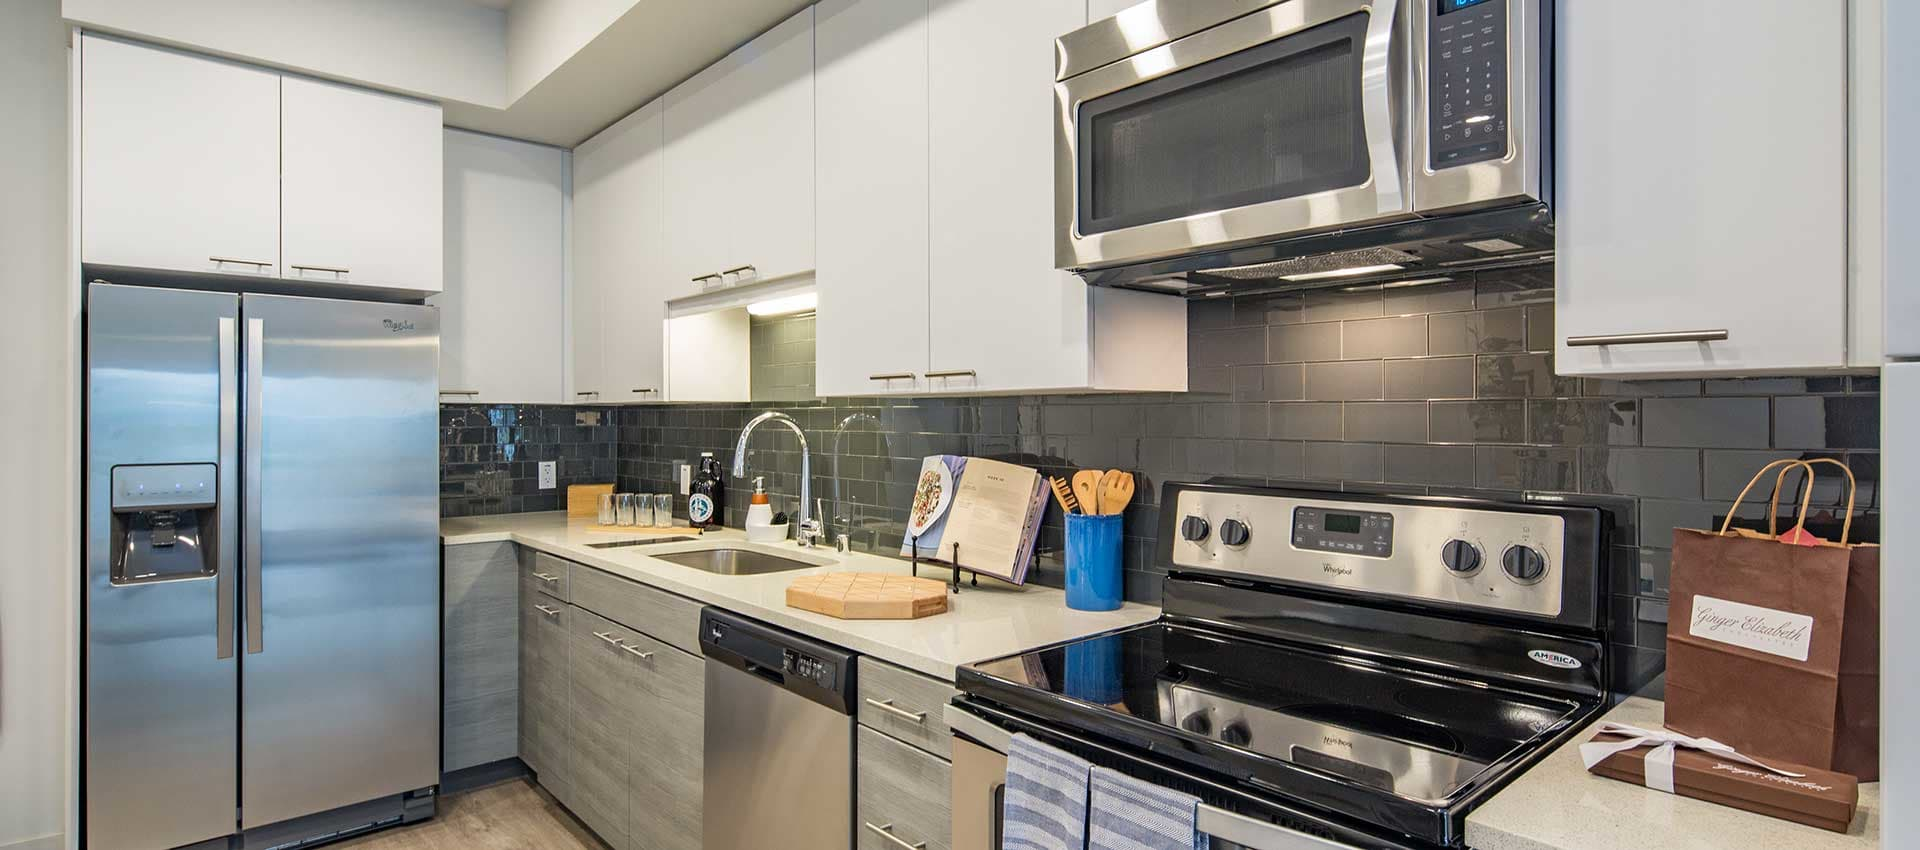 Fully equipped kitchen at EVIVA Midtown